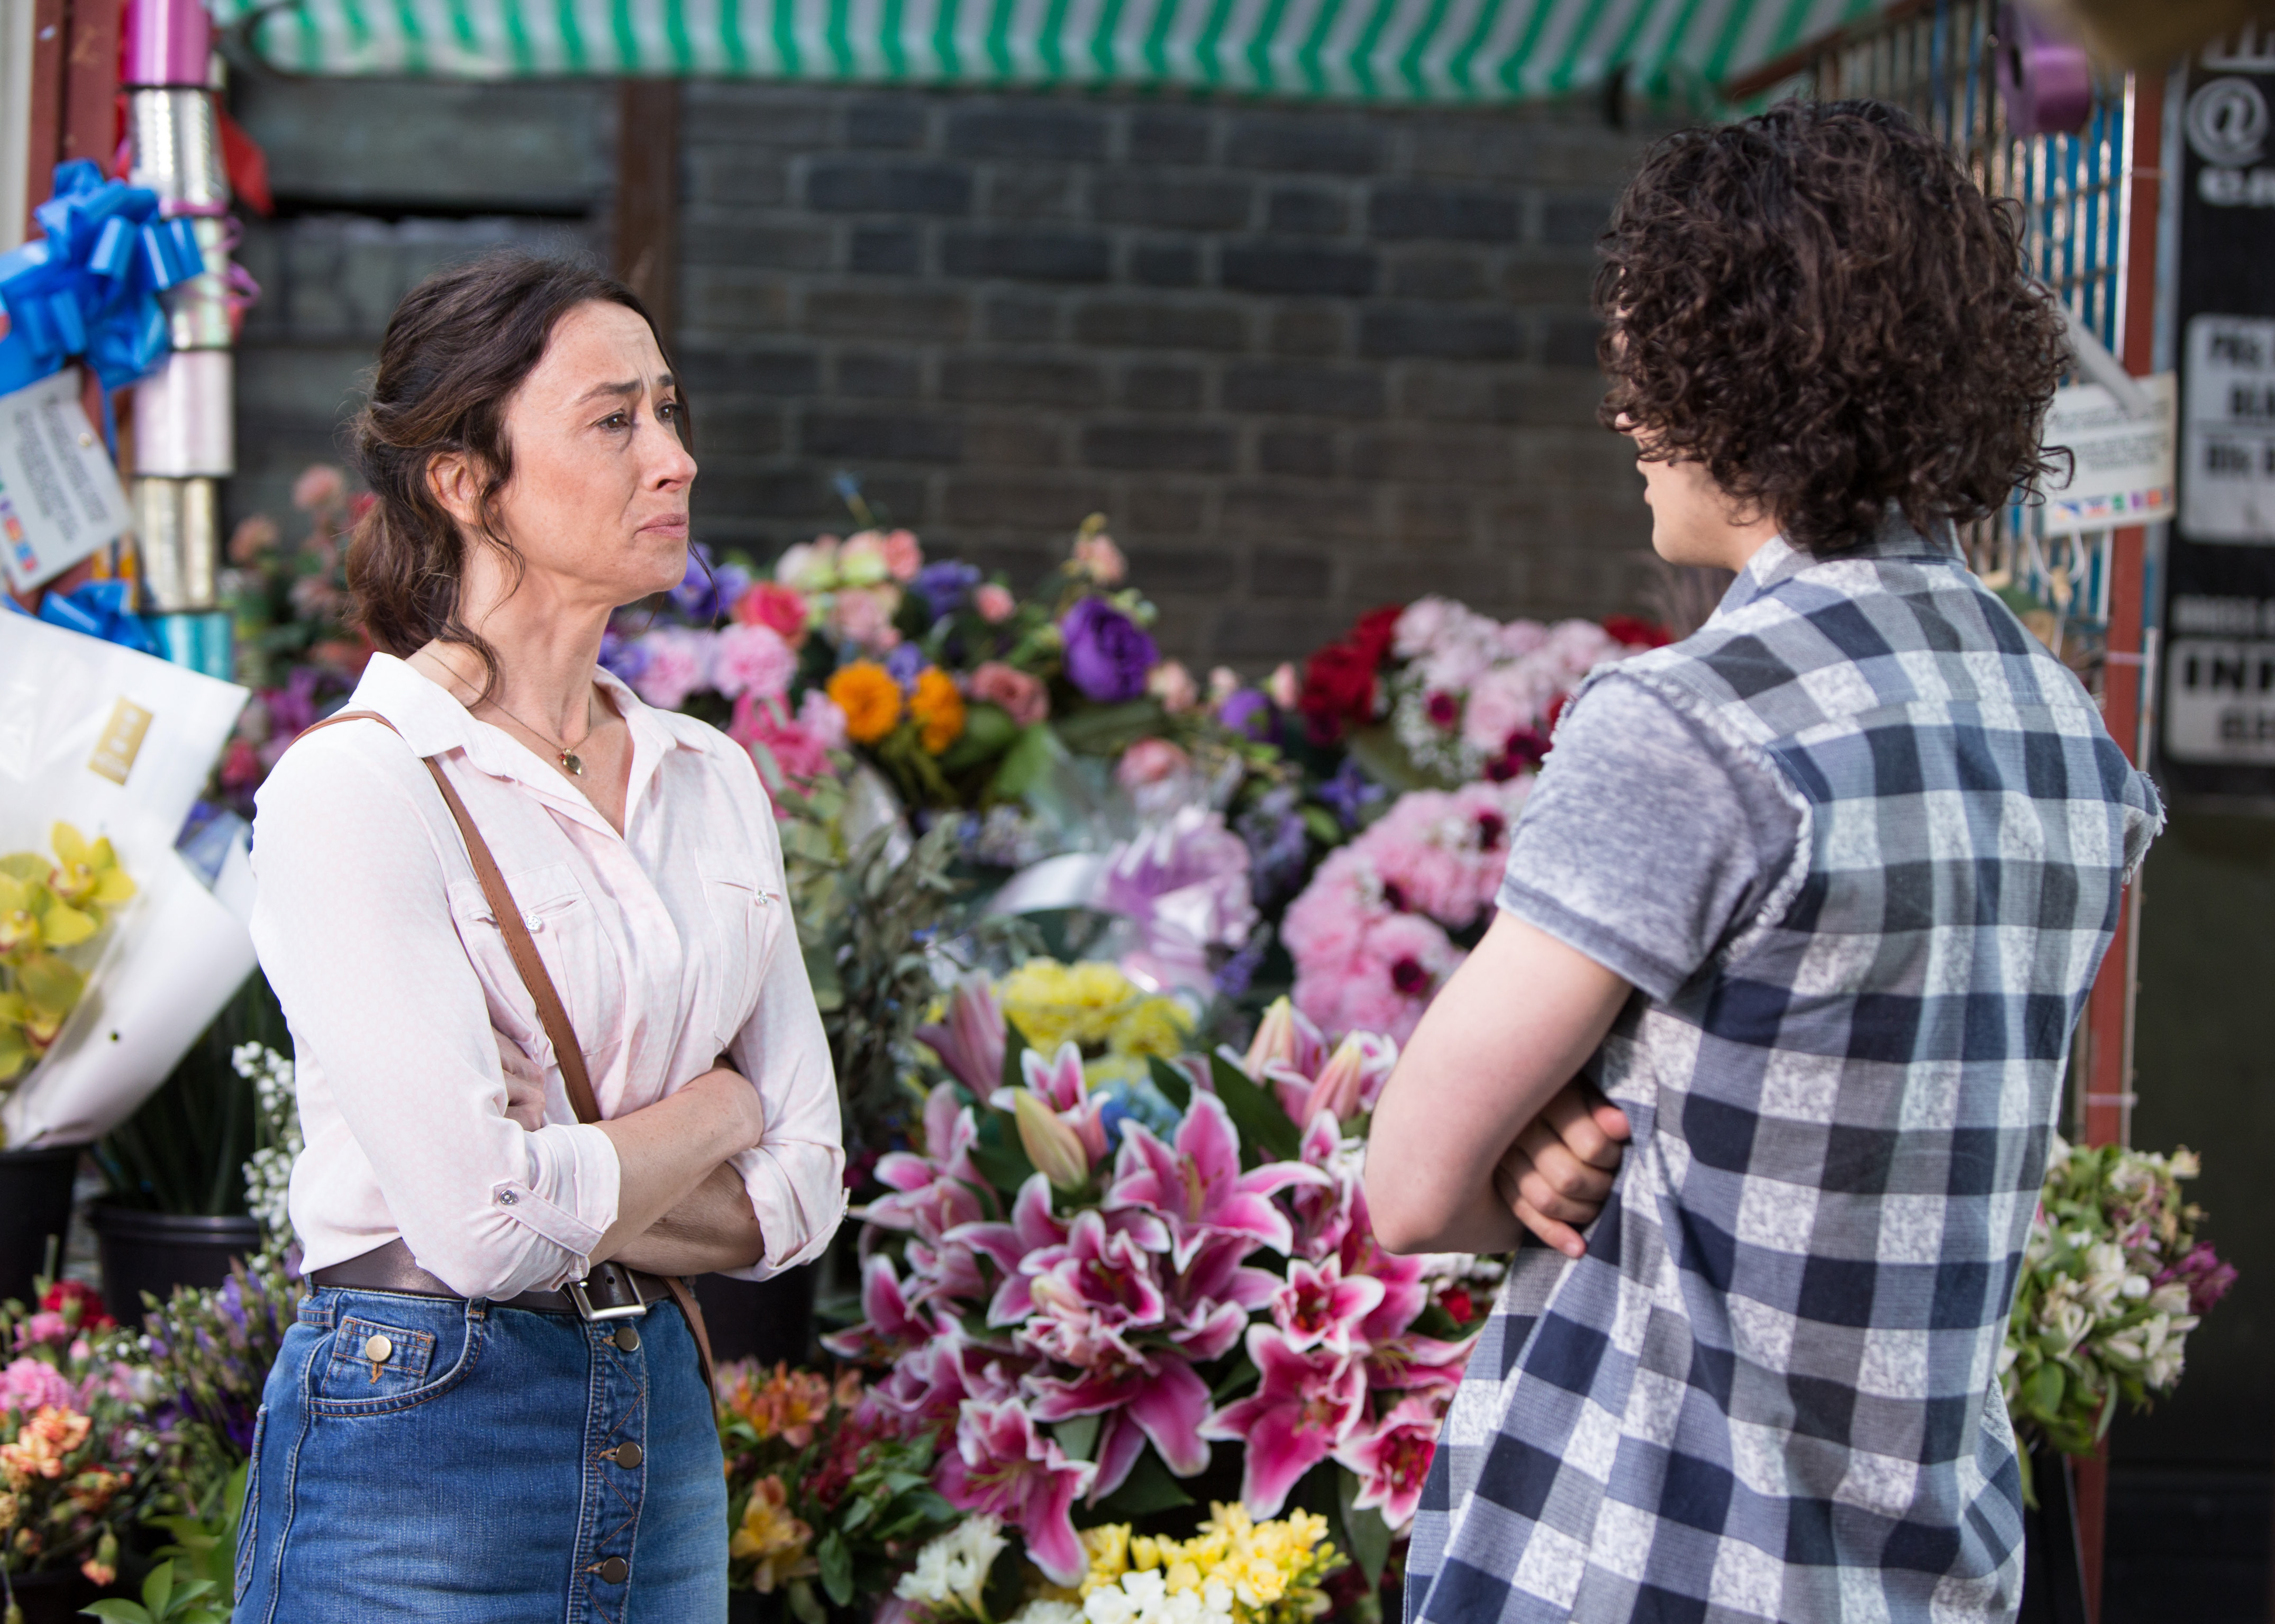 WARNING: Embargoed for publication until 00:00:01 on 05/07/2016 - Programme Name: EastEnders - July - September 2016 - TX: 12/07/2016 - Episode: EastEnders July - September  2016 - 5314 (No. n/a) - Picture Shows: *STRICTLY NOT FOR PUBLICATION UNTIL 00:01HRS, TUESDAY 5th JULY, 2016* ***FORTNIGHTLIES PLEASE DO NOT USE (SOAP LIFE AND ALL ABOUT SOAP) Jenny approaches Paul but bursts into tears when he speaks to her, overwhelmed. Jenny Rawlinson (AMY MARSTON), Paul Coker (JONNY LABEY) - (C) BBC - Photographer: Kieron McCarron